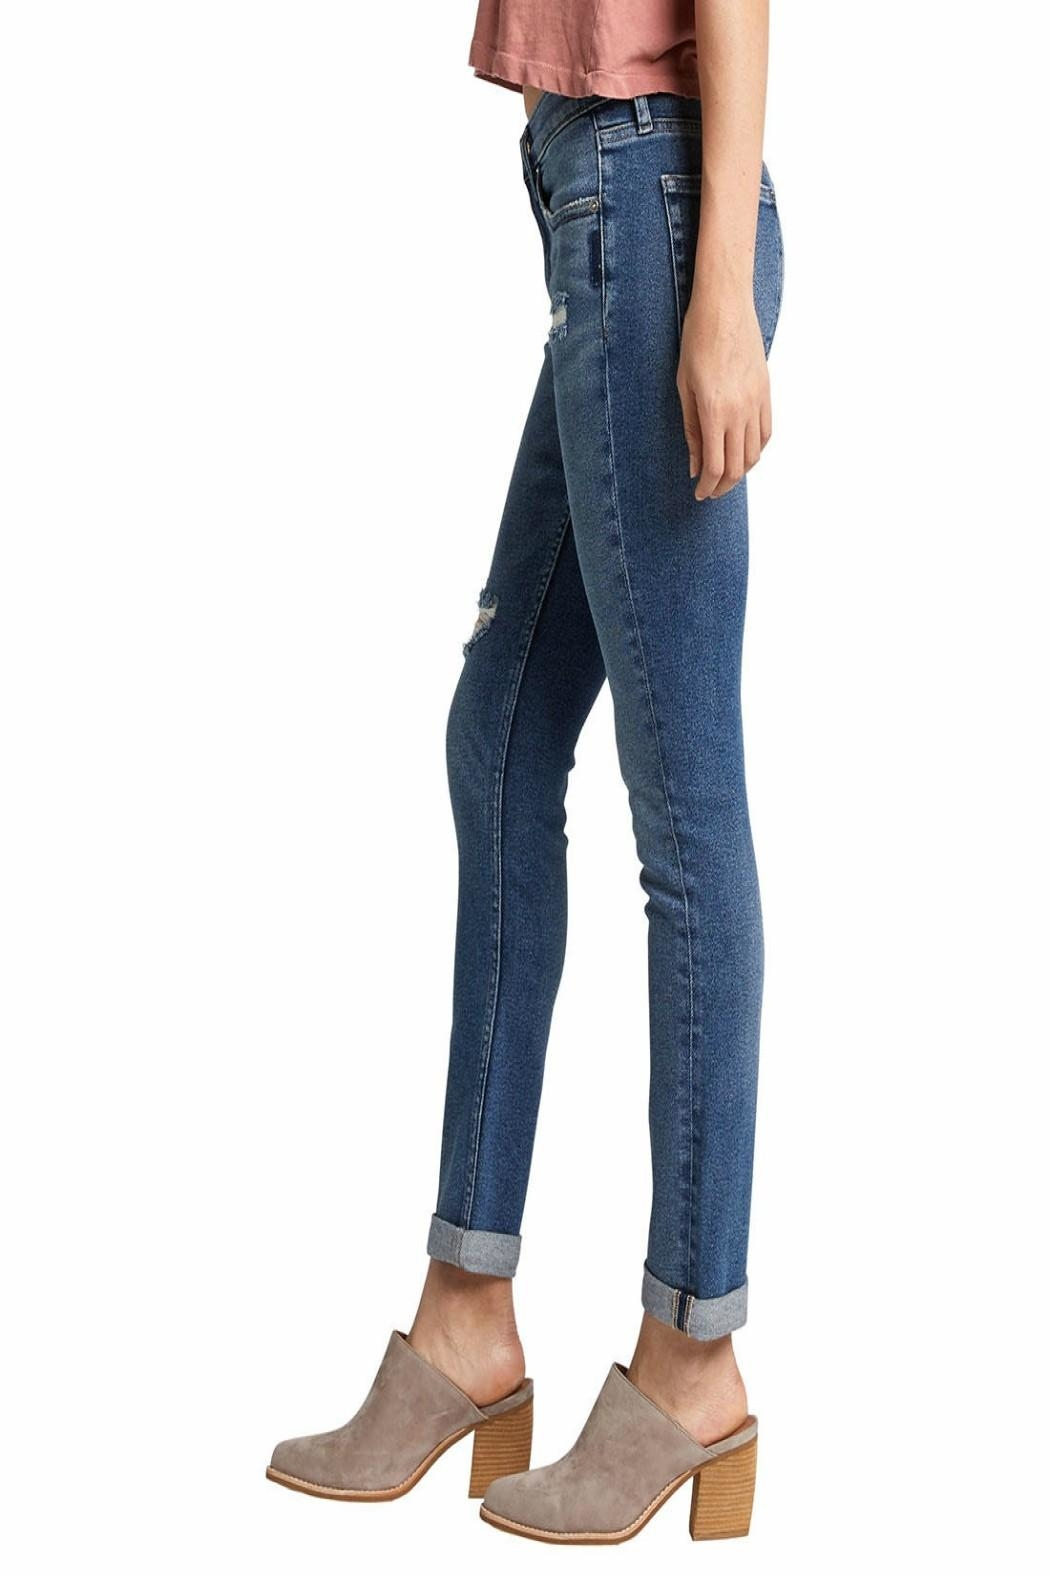 Silver Jeans Co. Not Your-Boyfriend's Jeans - Side Cropped Image